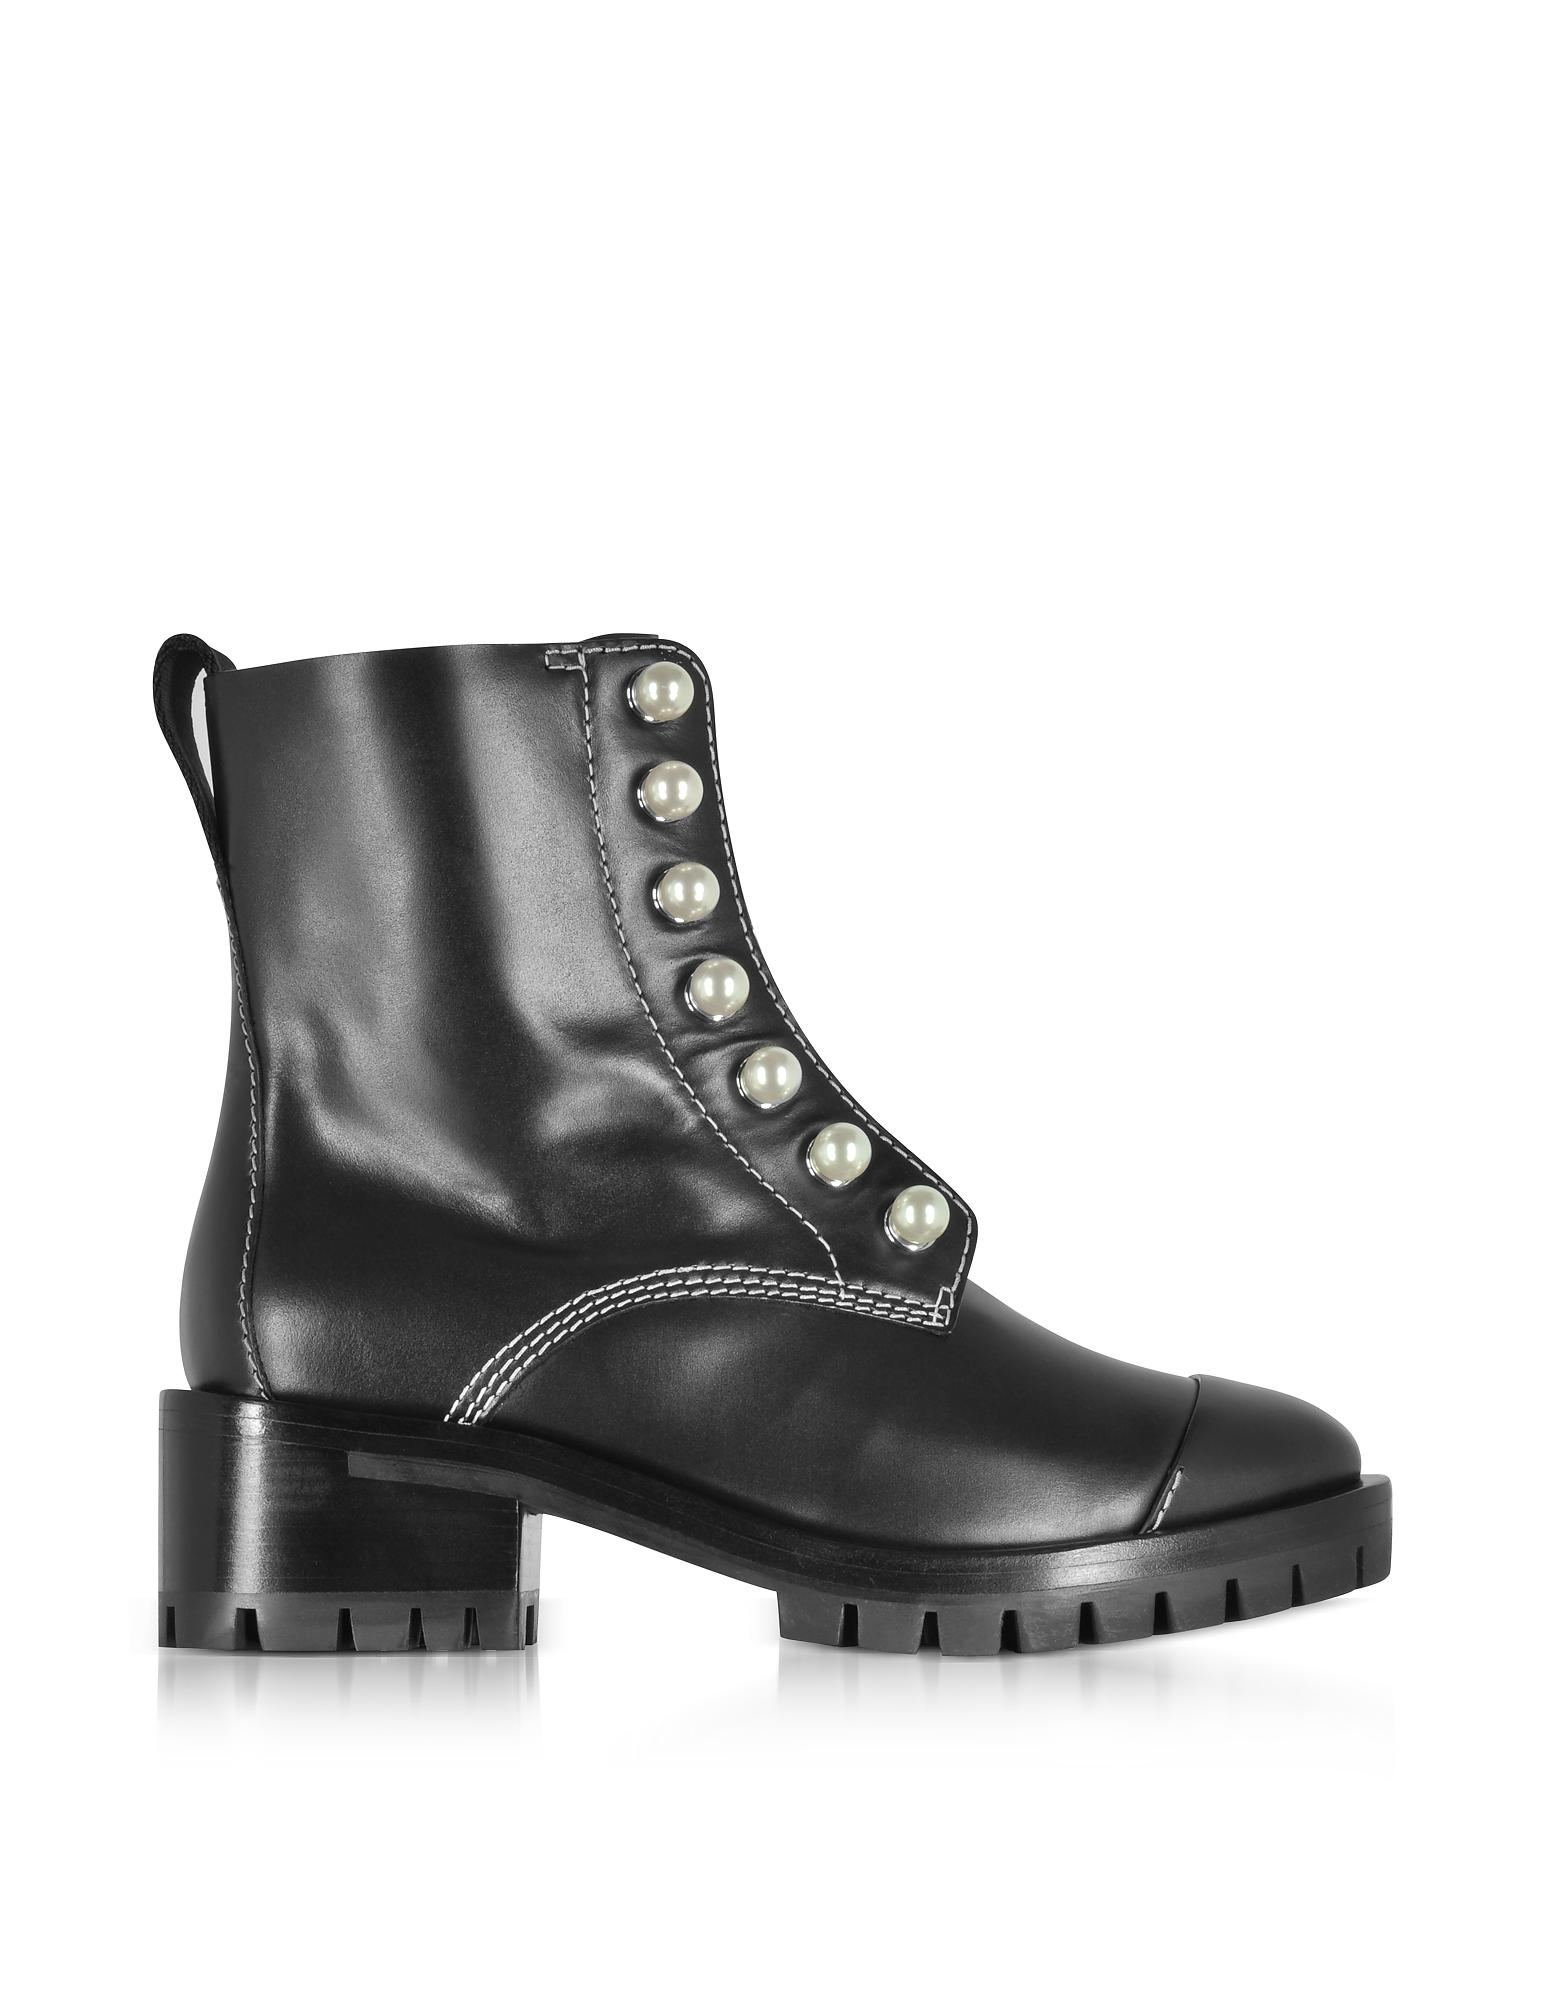 Get Online Factory Outlet Burrow Flat Boots with Pearls in Black Mix Leather with Beads and Crystals Jimmy Choo London Sale Classic Finishline For Sale upbgZOt